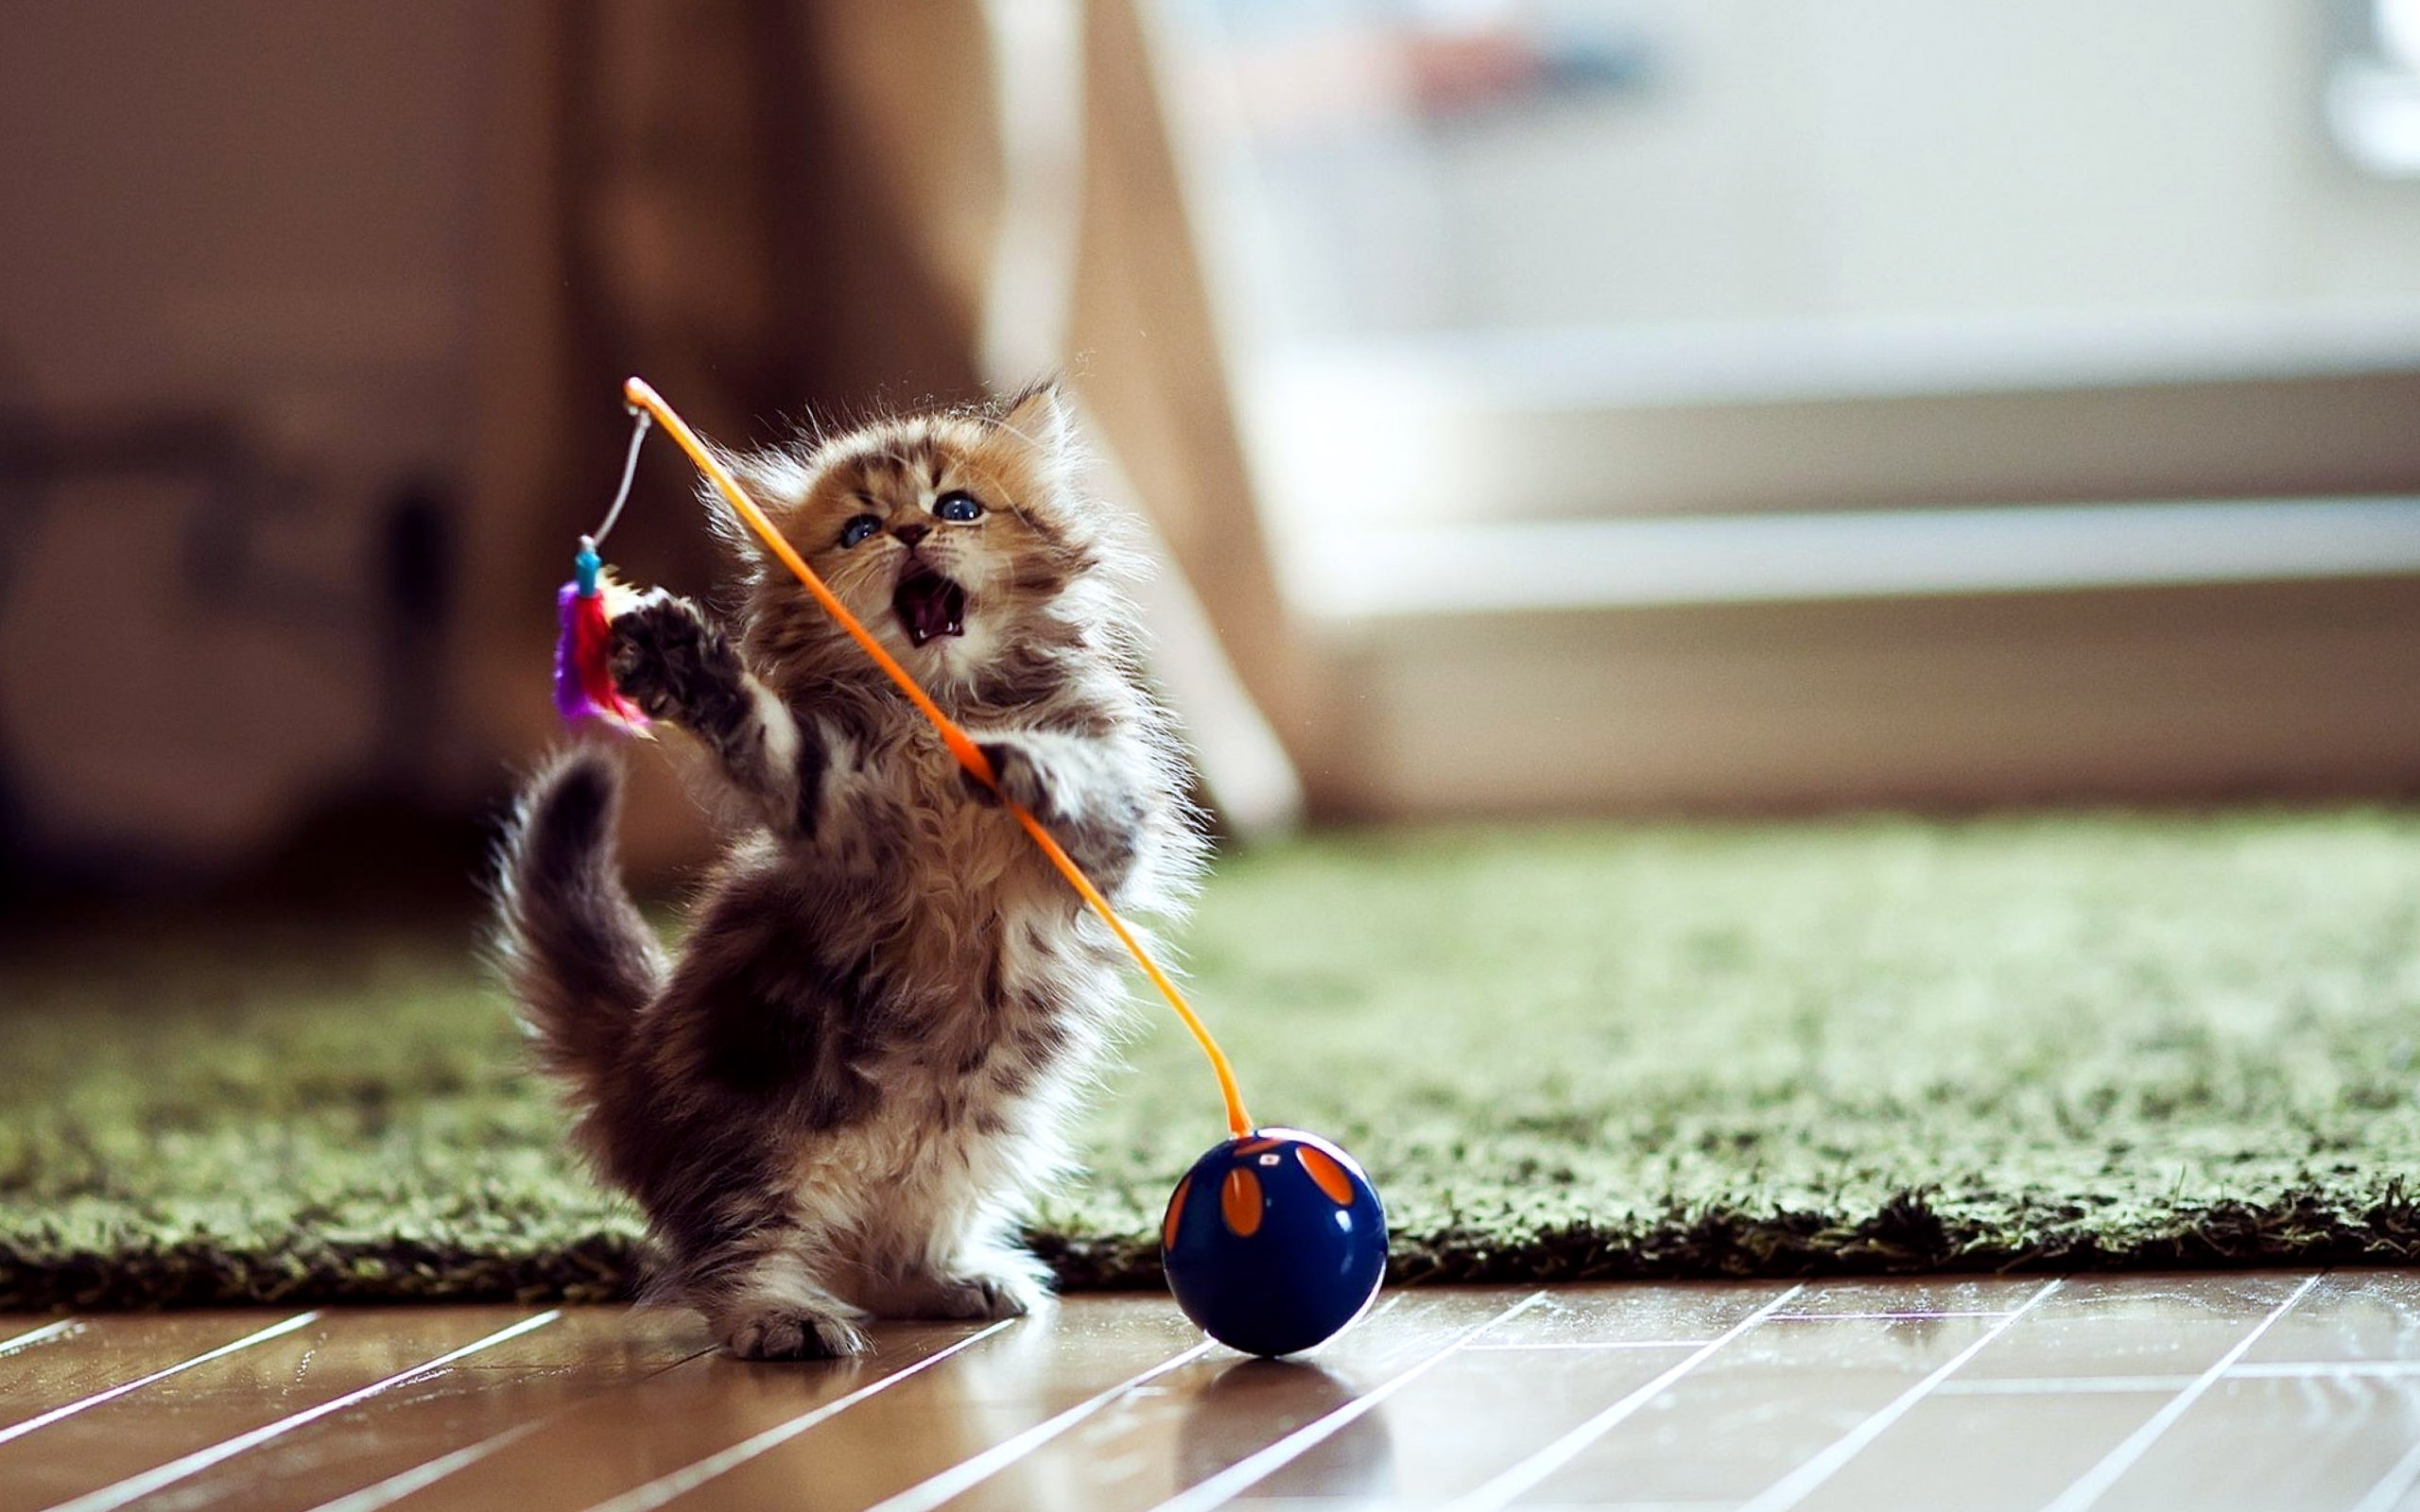 Cute Baby Pets Live Wallpaper Download Funny Cat Games 14 High Resolution Wallpaper